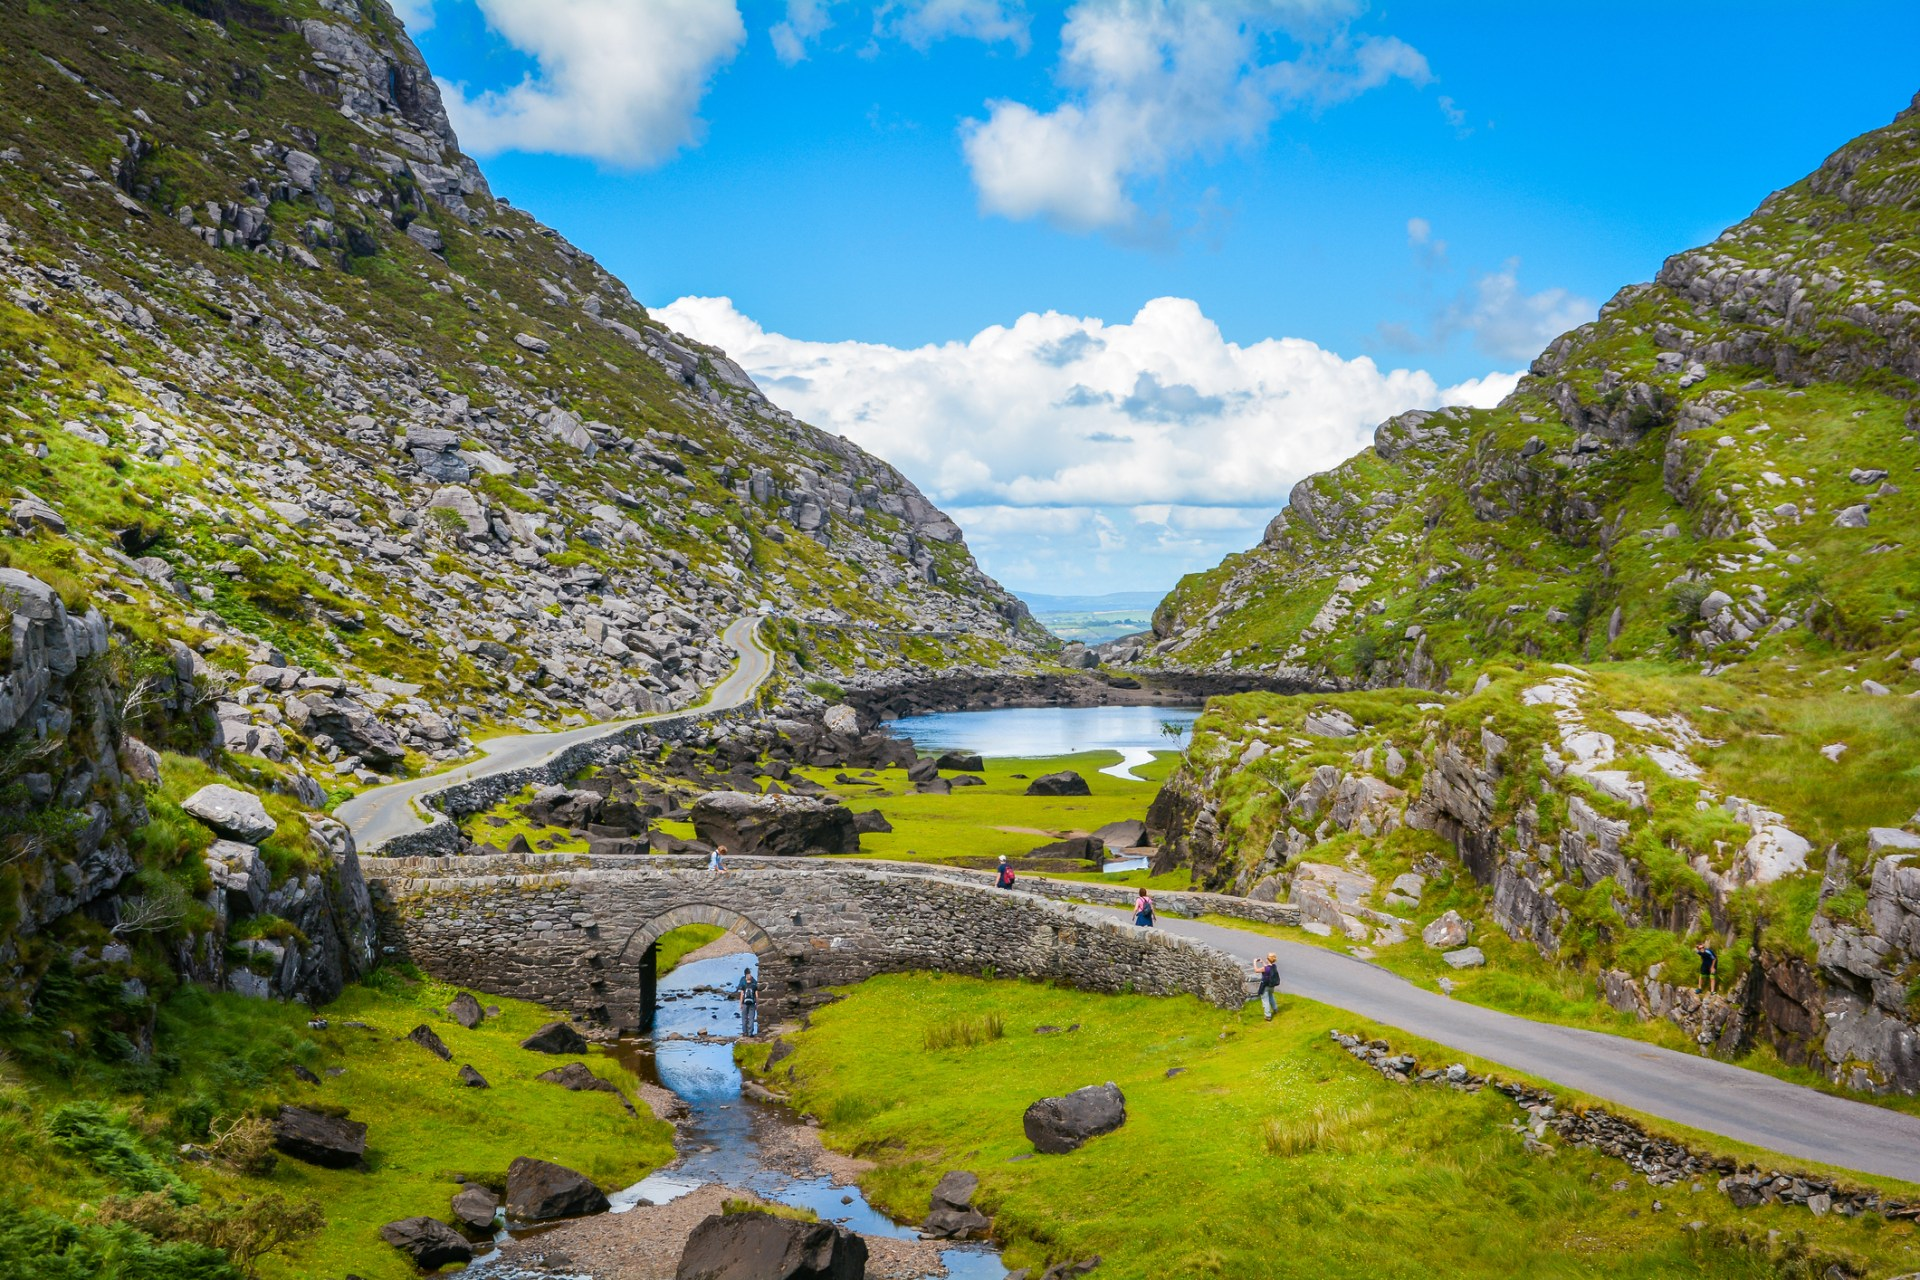 5 Best Things To Do In Killarney, Ireland - The Journal